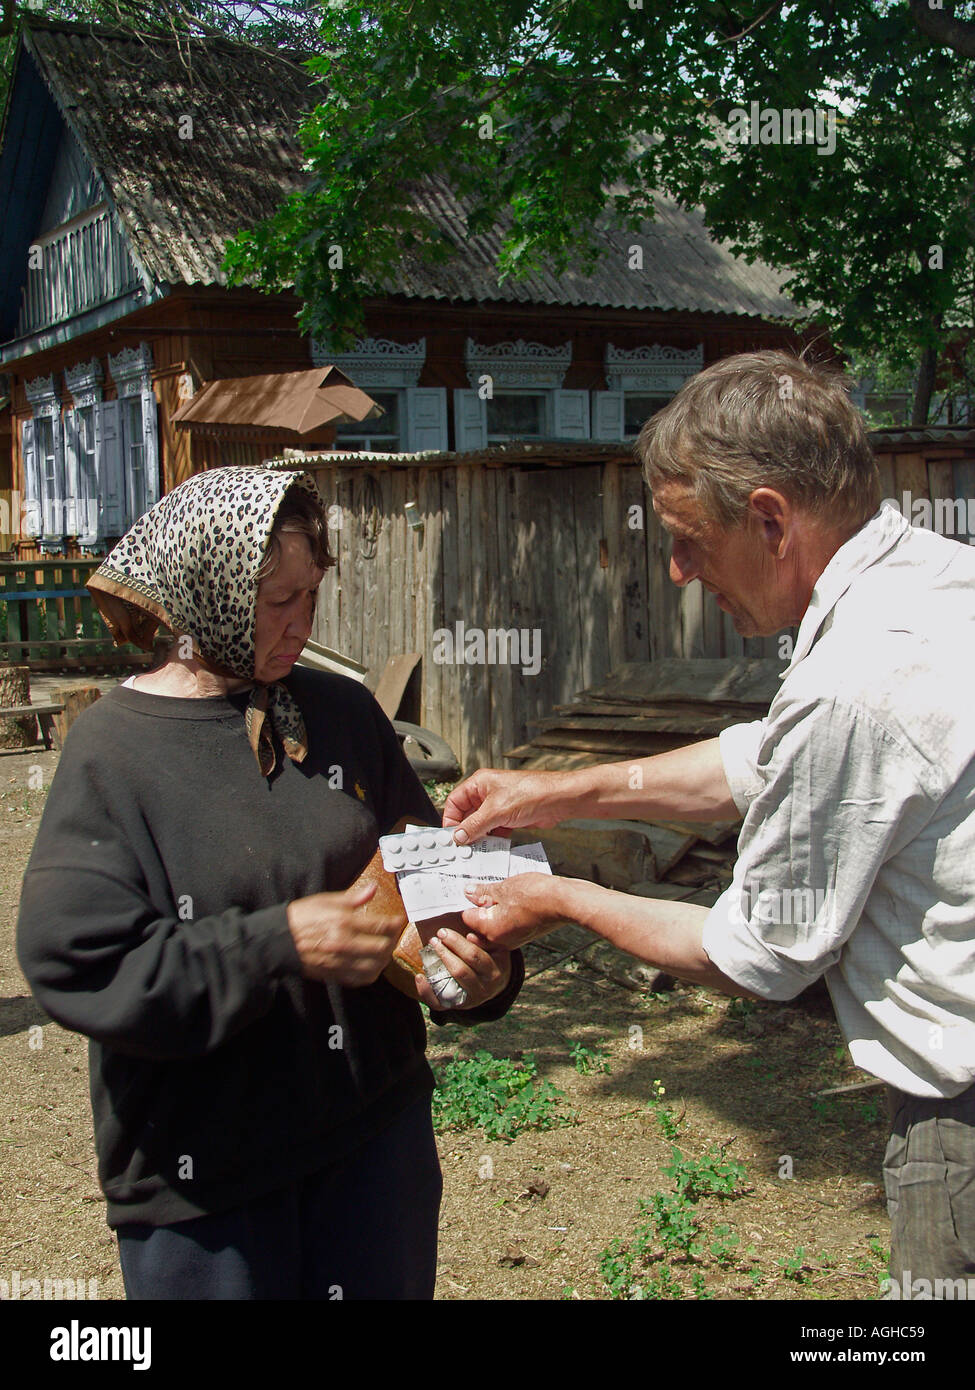 Chernobyl survivor, a Samosely woman buying proprietary pharmaceutical medicines outdoors in Chernobyl exclusion zone, Belarus Ukraine state border - Stock Image